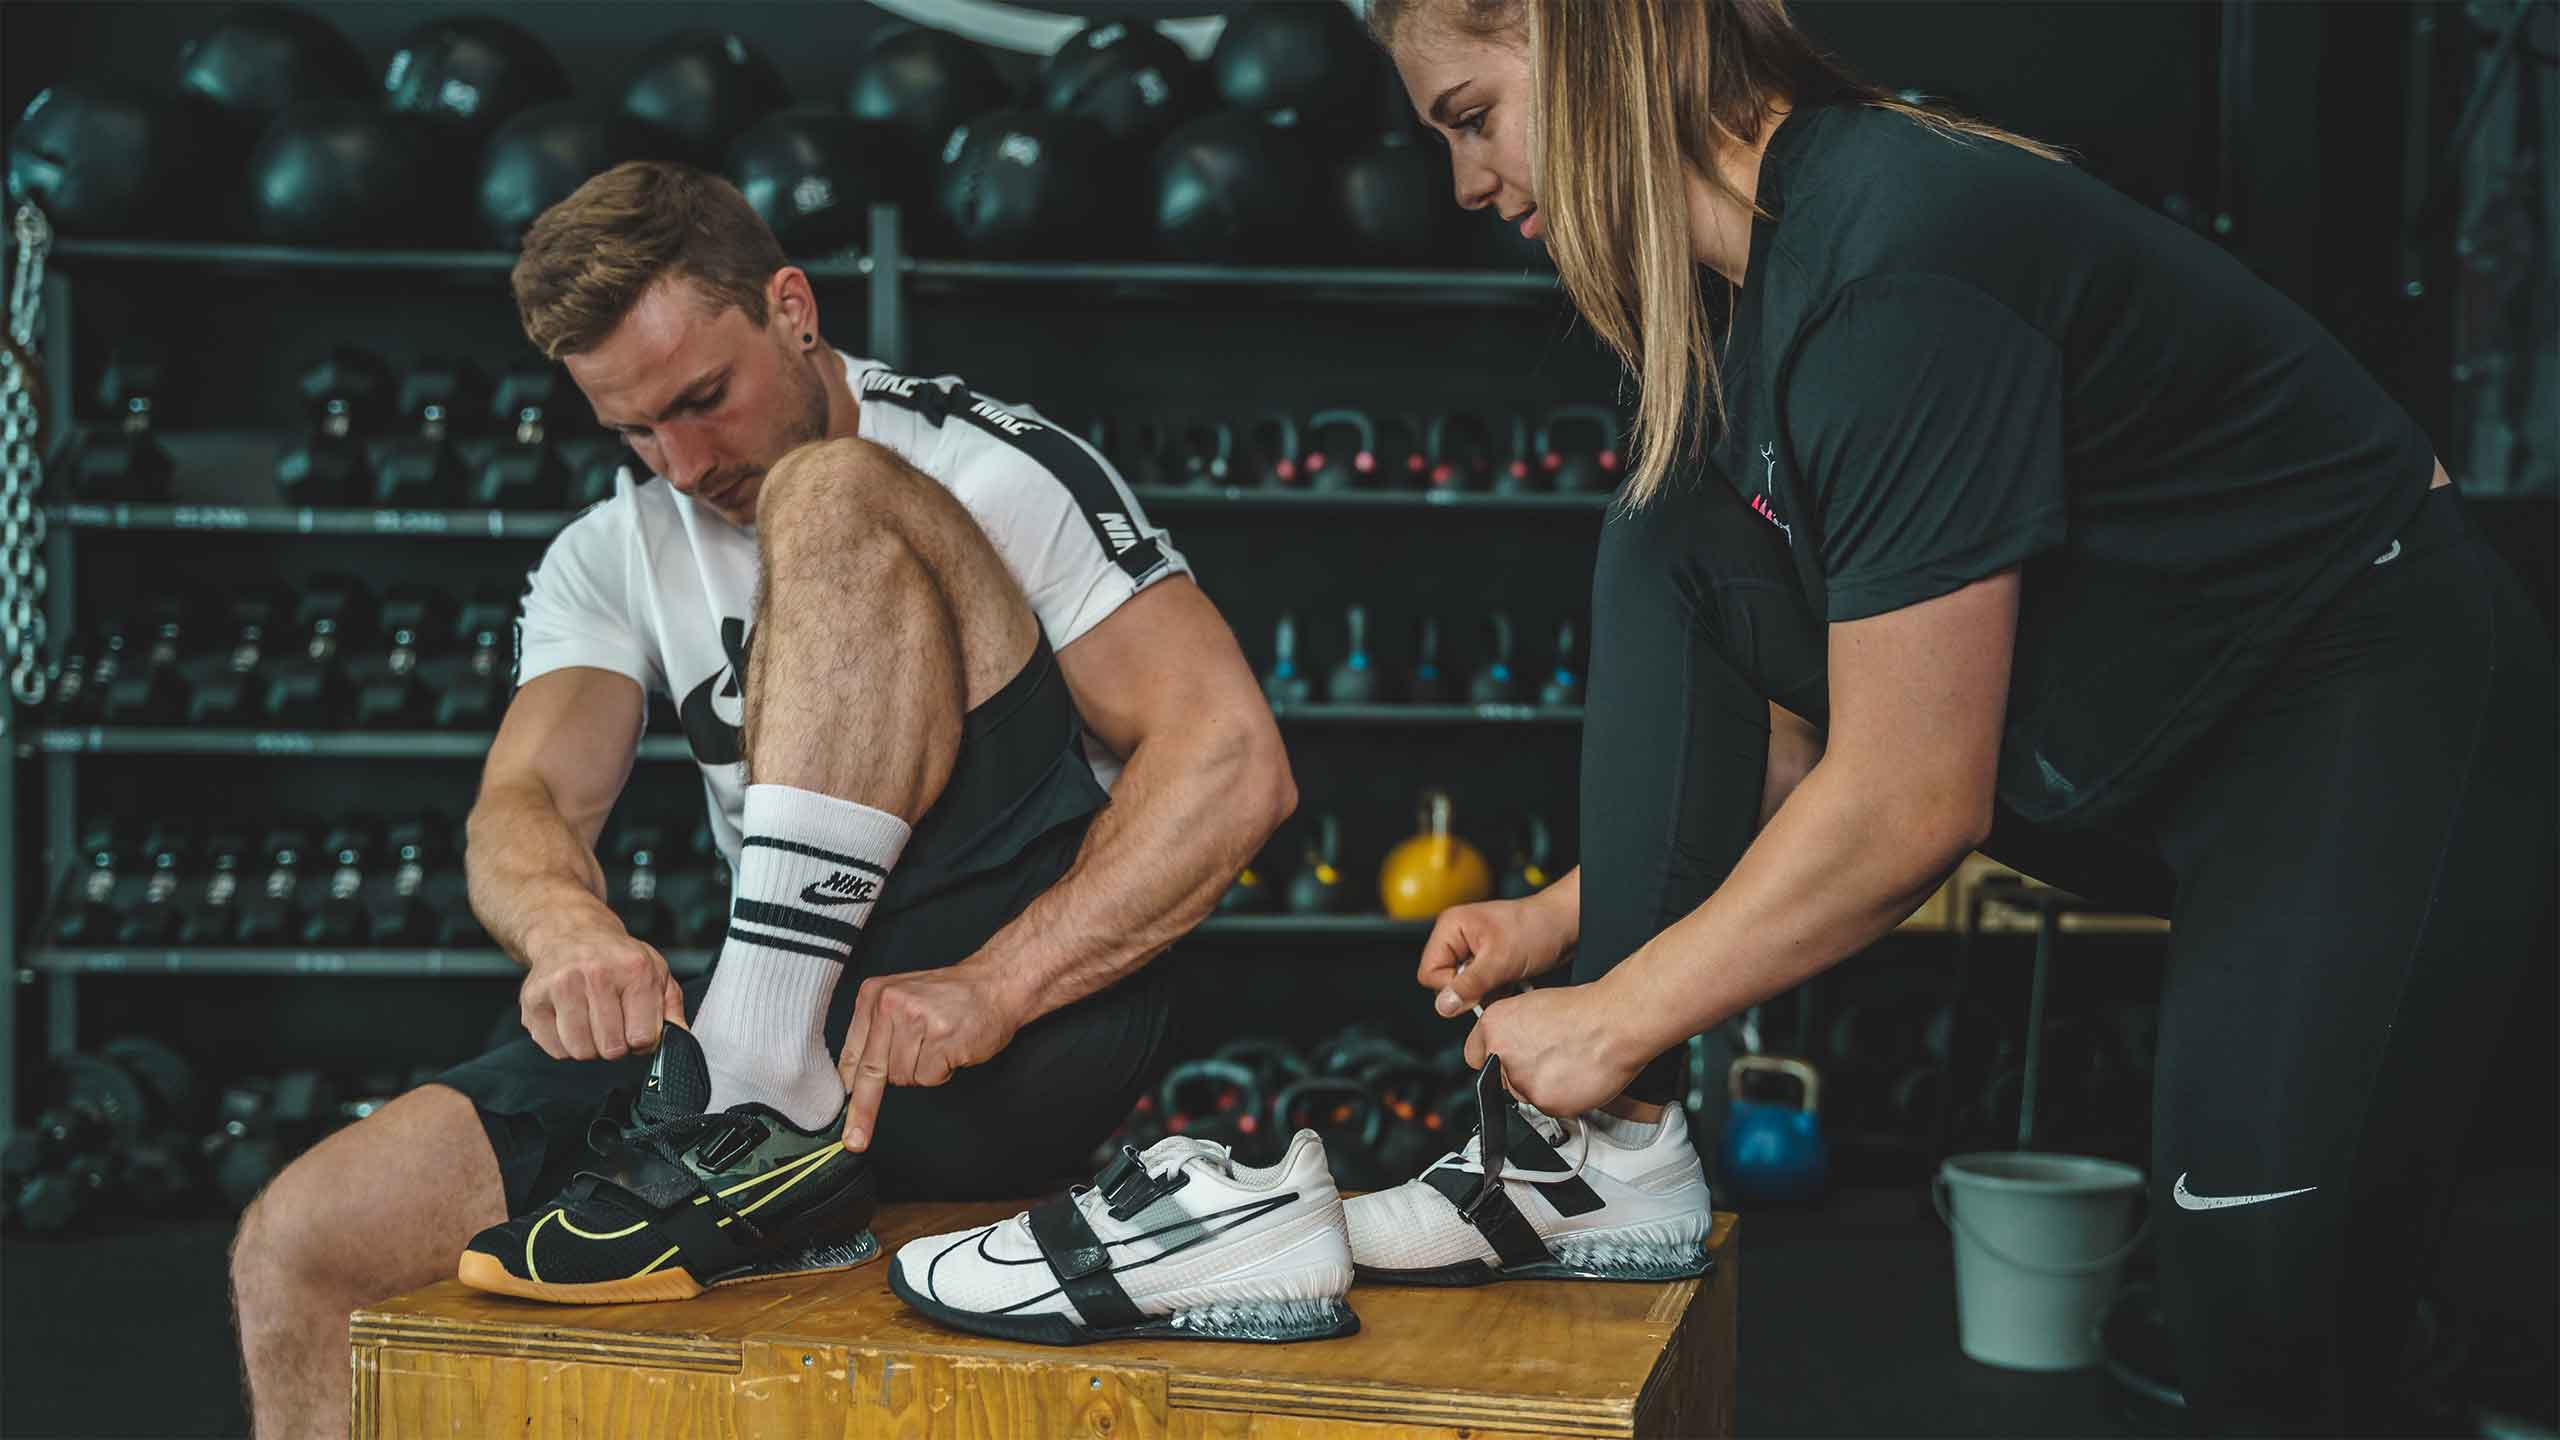 cheap weightlifting shoes reddit